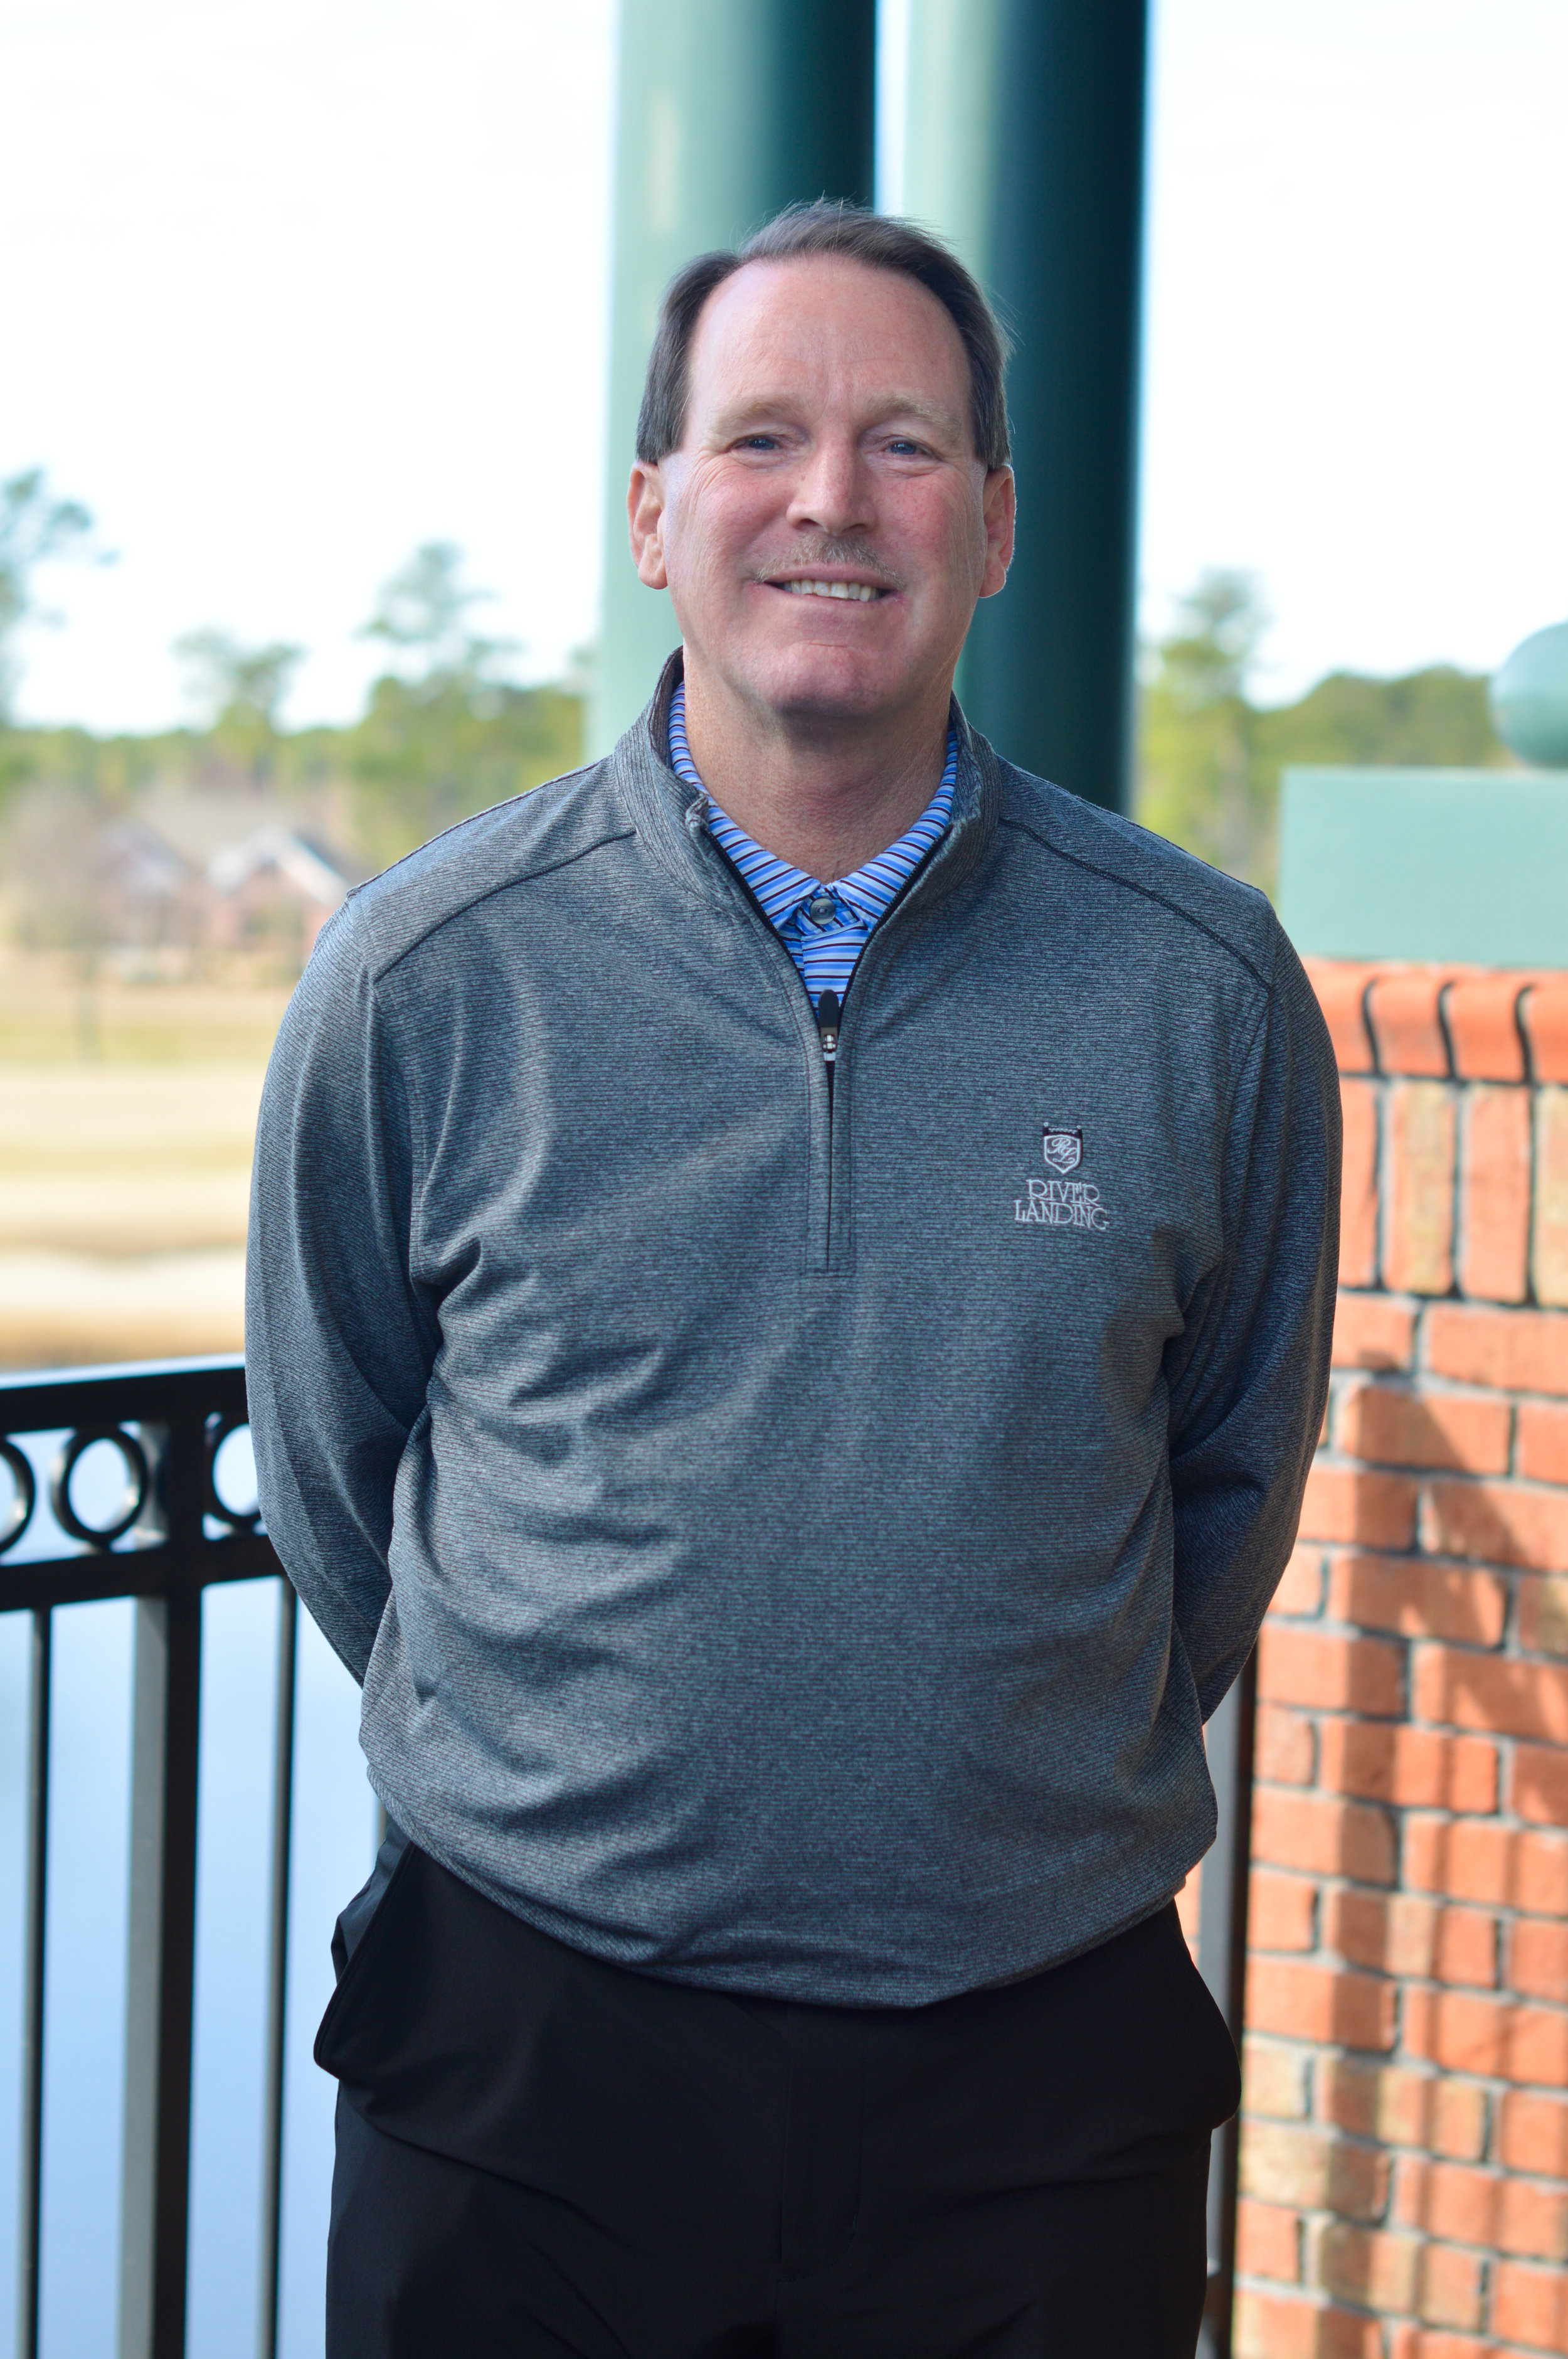 Larry George - Director of GolfHead Golf Professional